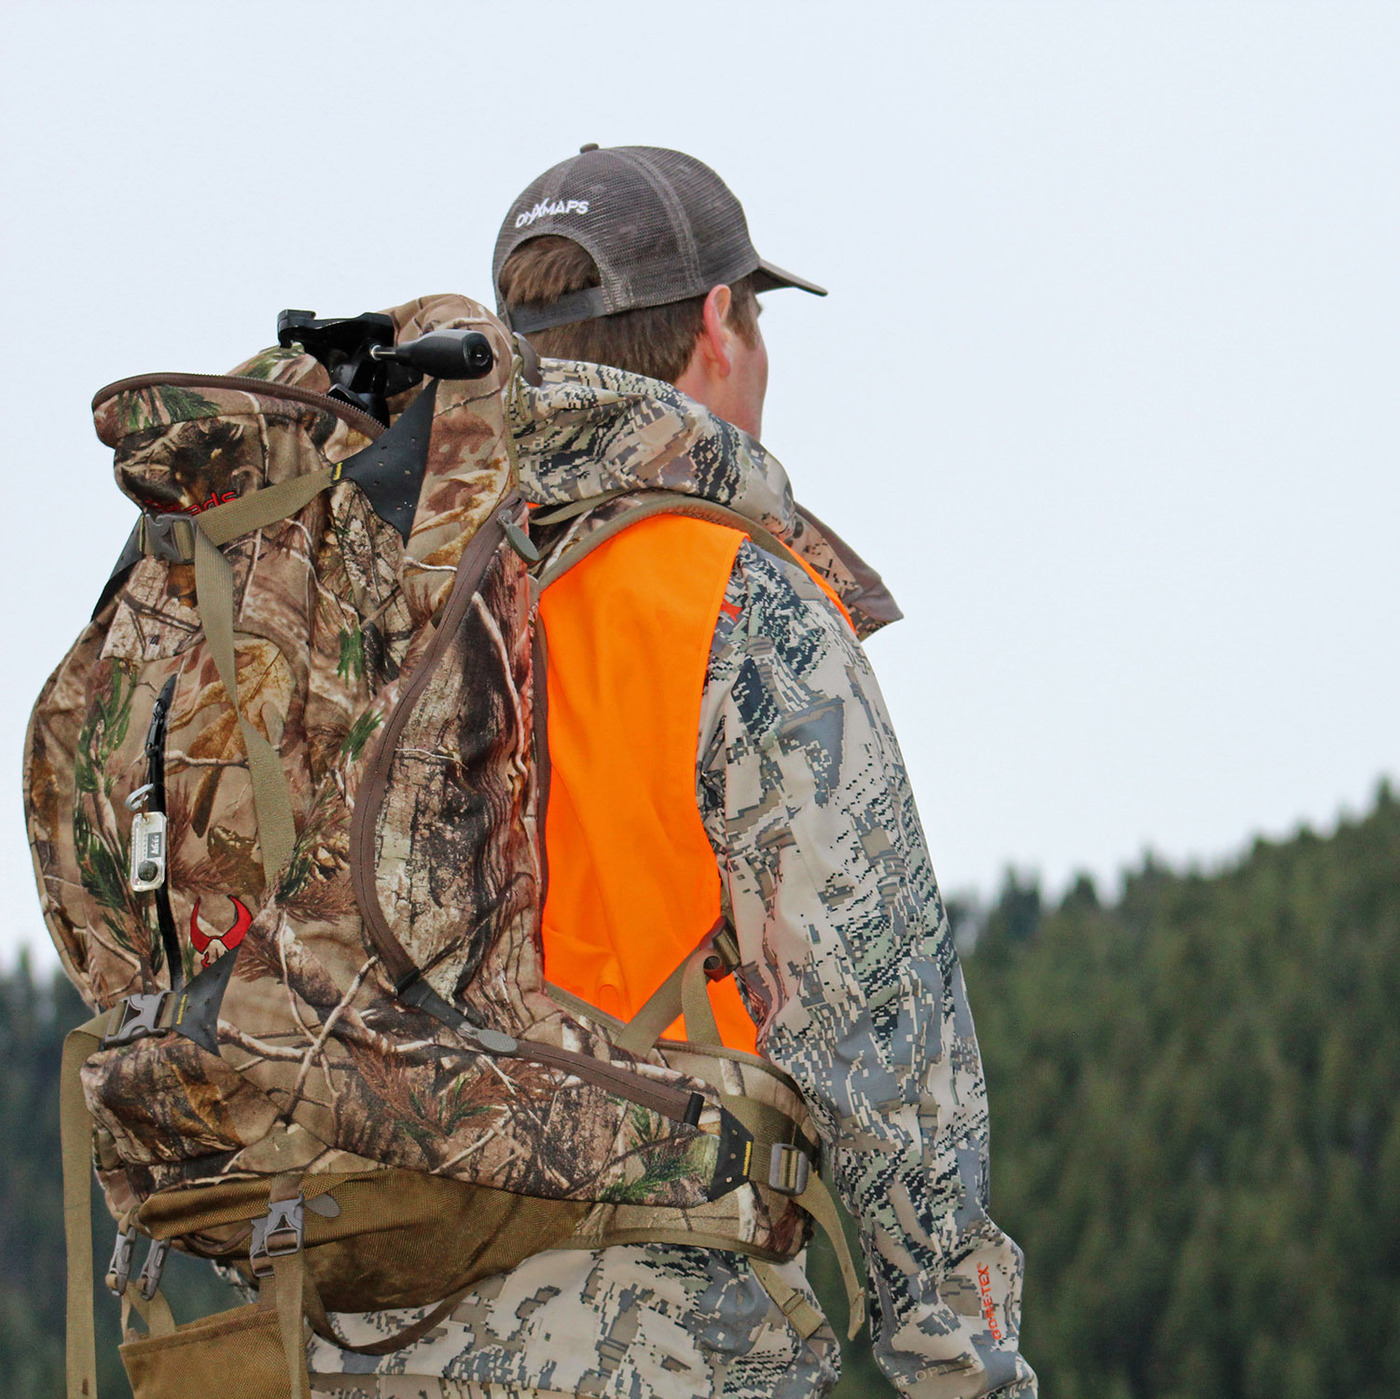 Best Hunting Backpack under 100 | Authorized Boots